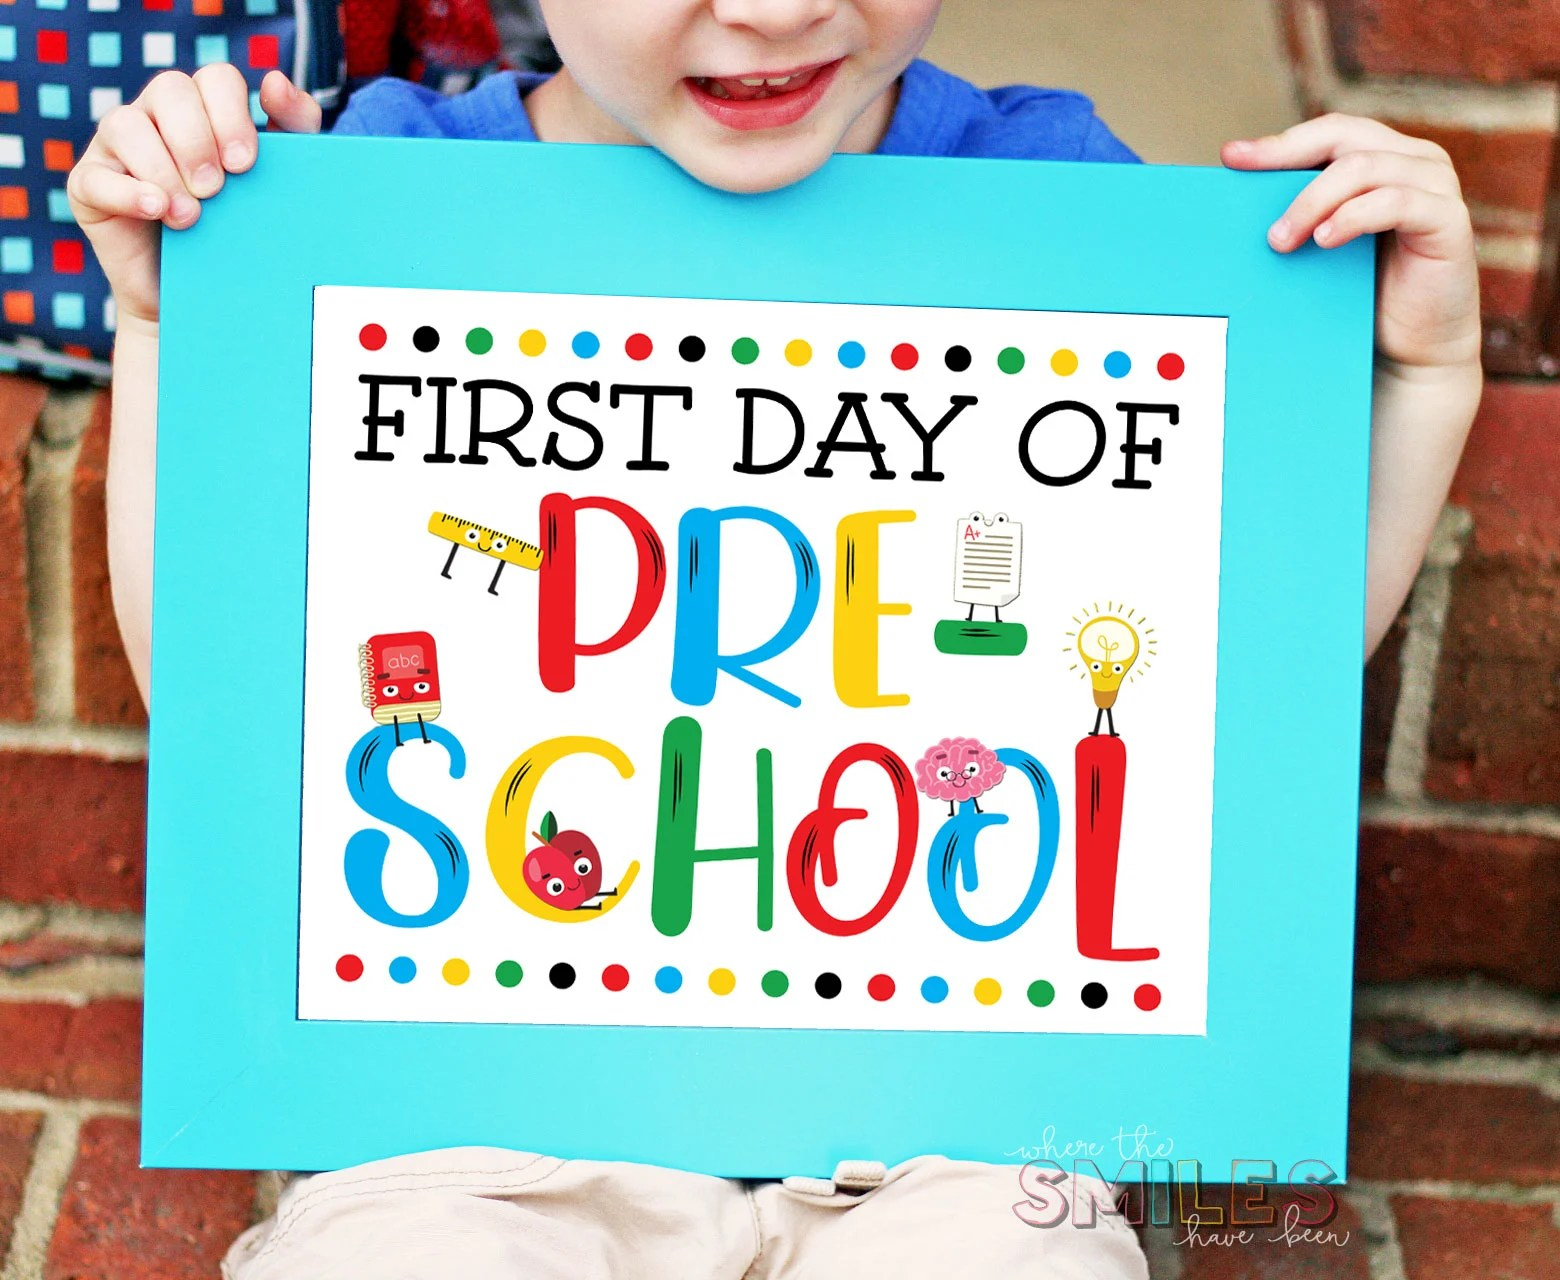 photo about First Day of School Sign Printable titled Absolutely free 1st Working day of Higher education Signal Printables - A few Colour Models!